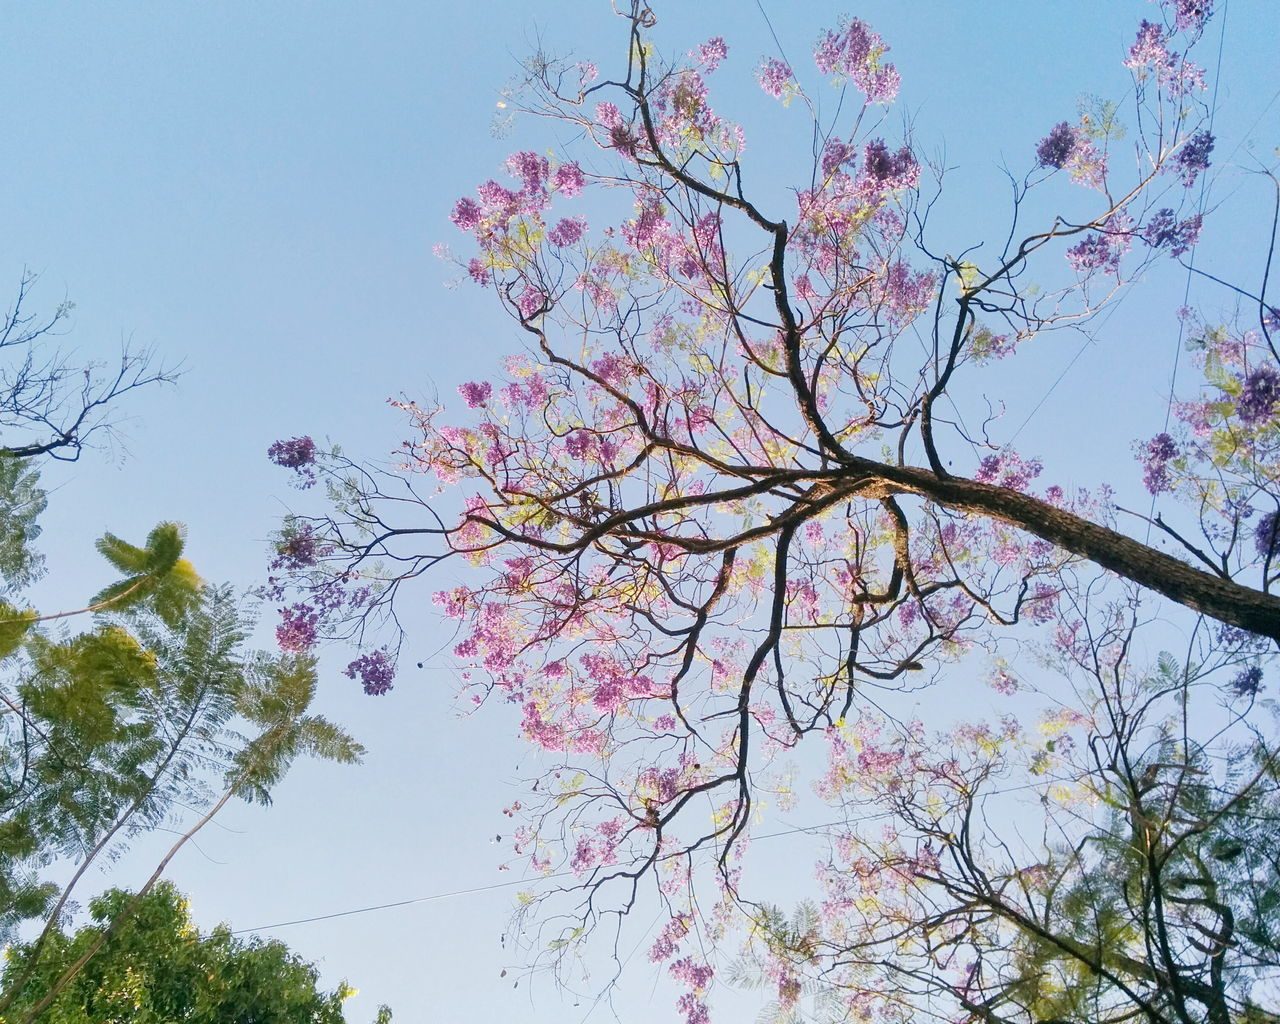 Beauty In Nature Clear Sky Leaves Low Angle View Nature No People Pink Pink Leaves Spring Sunny Tree